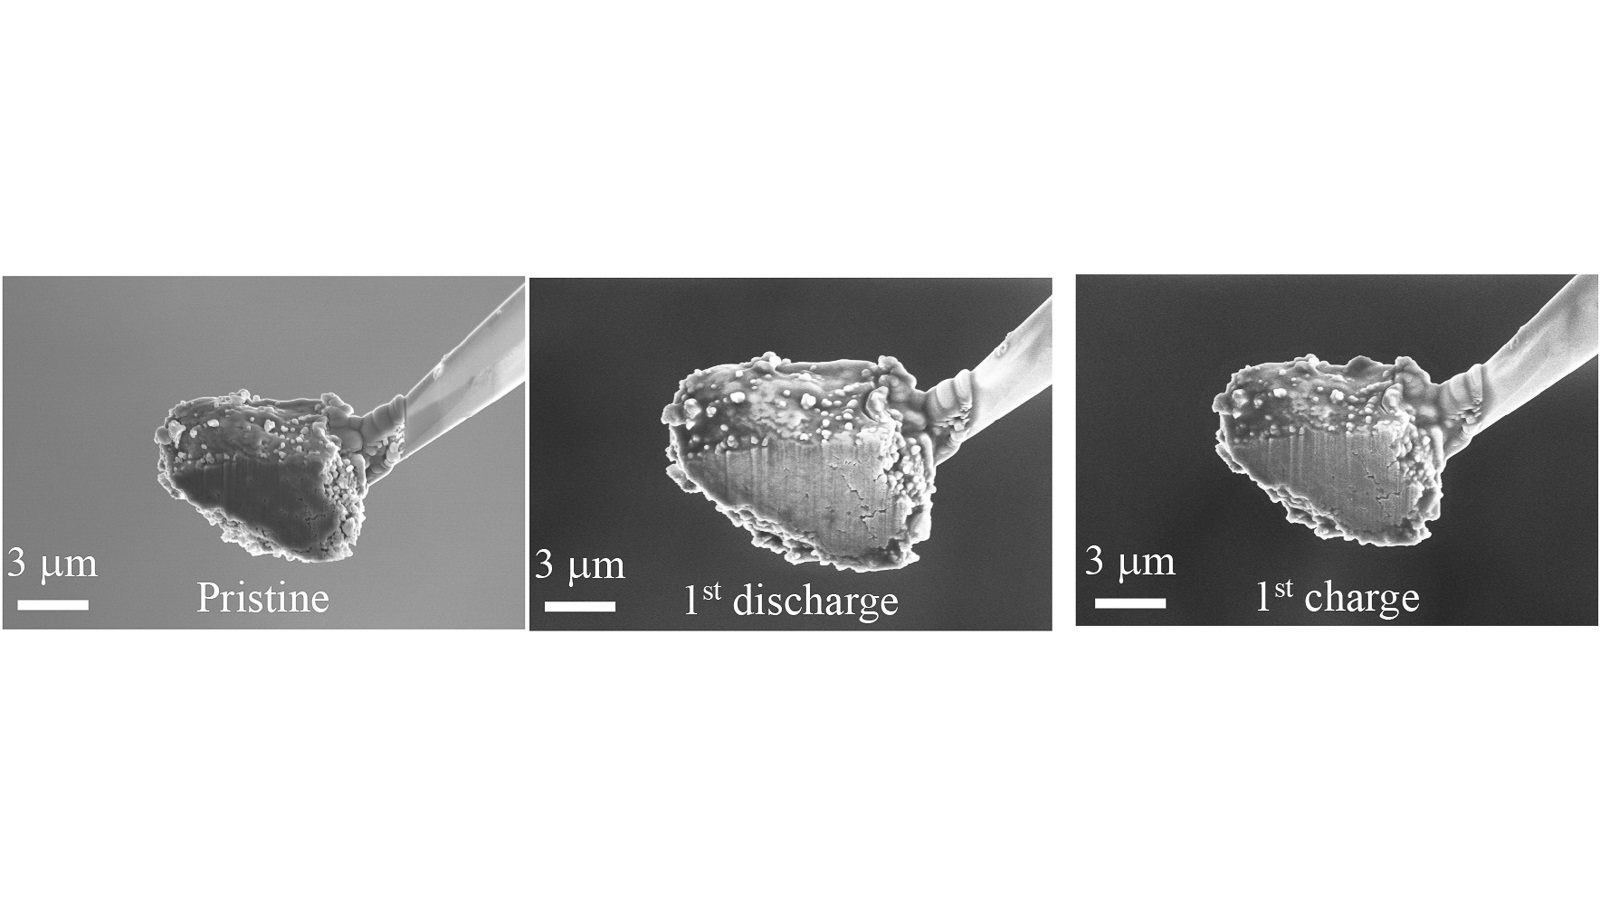 Argonne scientists observed reversible volume and phase change of micrometer-sized phosphorus particles during charge and discharge. (Image by Argonne National Laboratory / Guiliang Xu.)